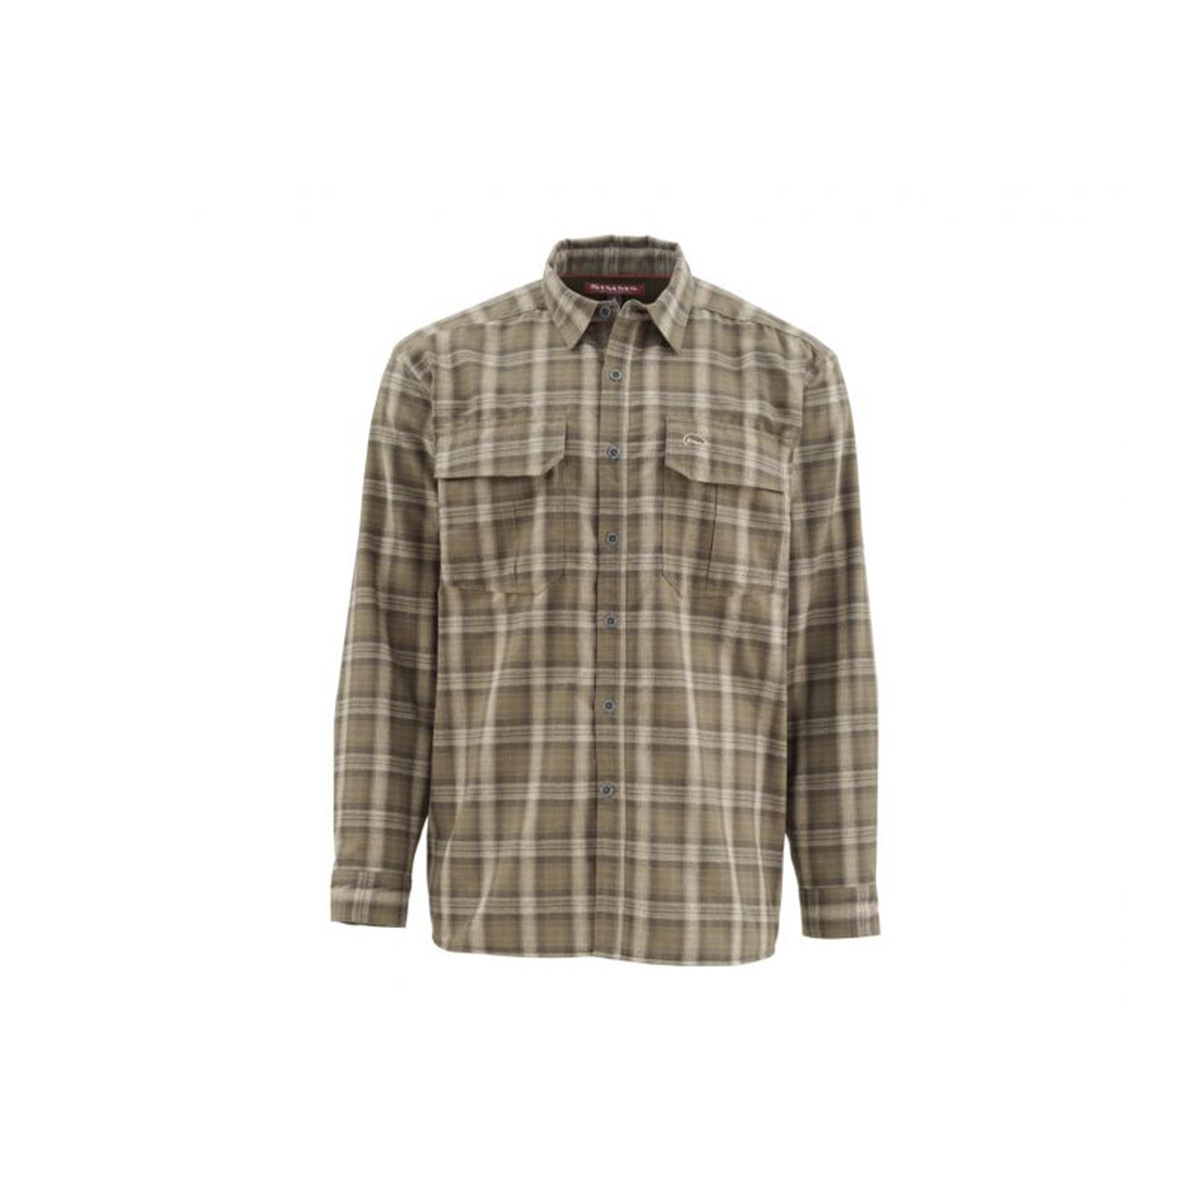 Simms Clothing ColdWeather Long Sleeve Shirt